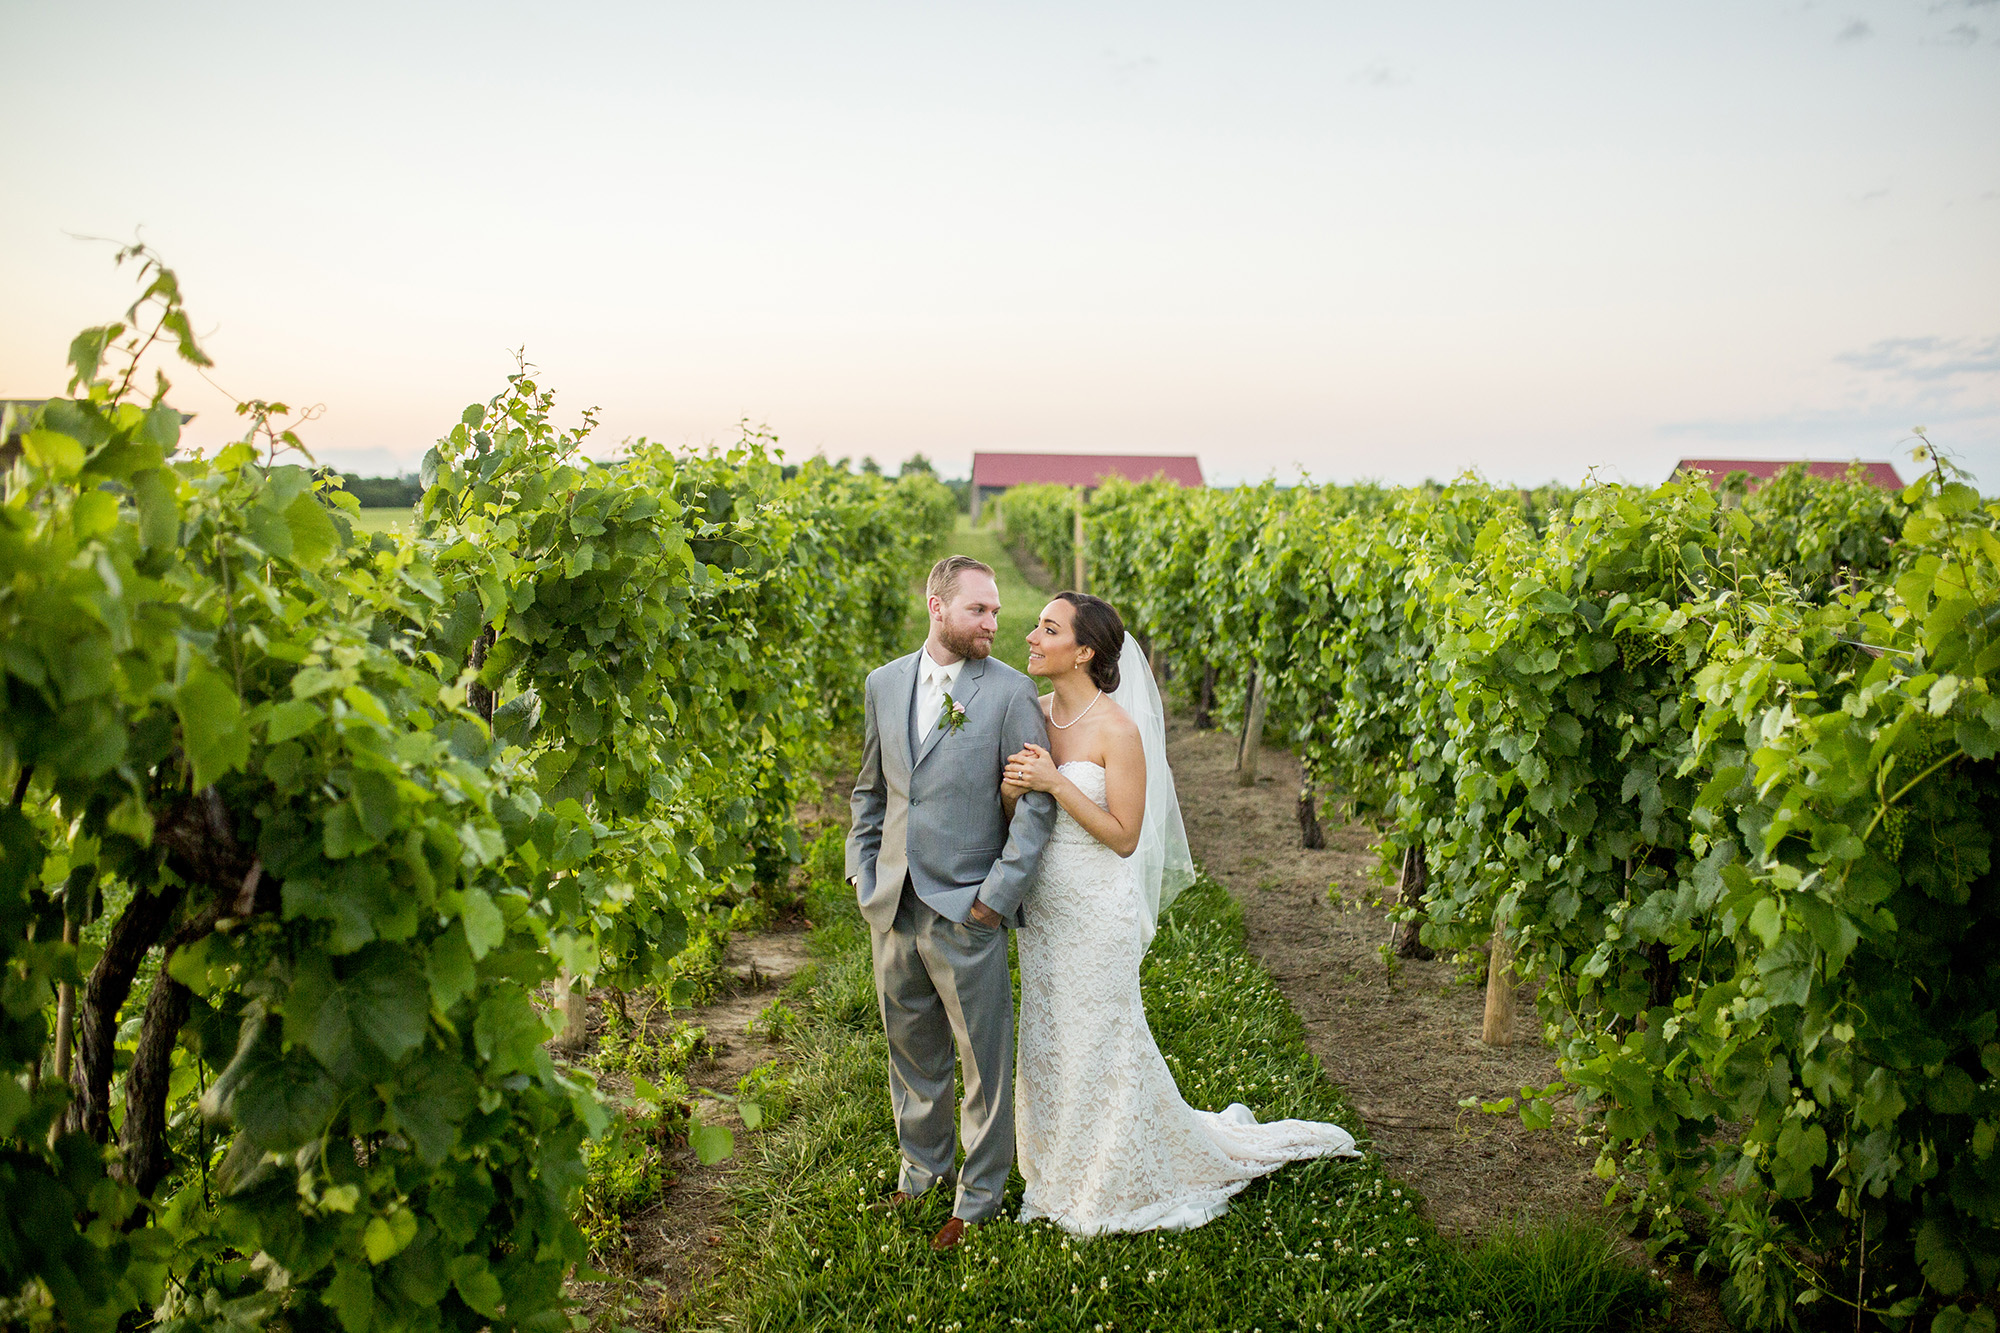 Seriously_Sabrina_Photography_Lexington_Kentucky_Talon_Winery_Wedding_Kjellsen168.jpg